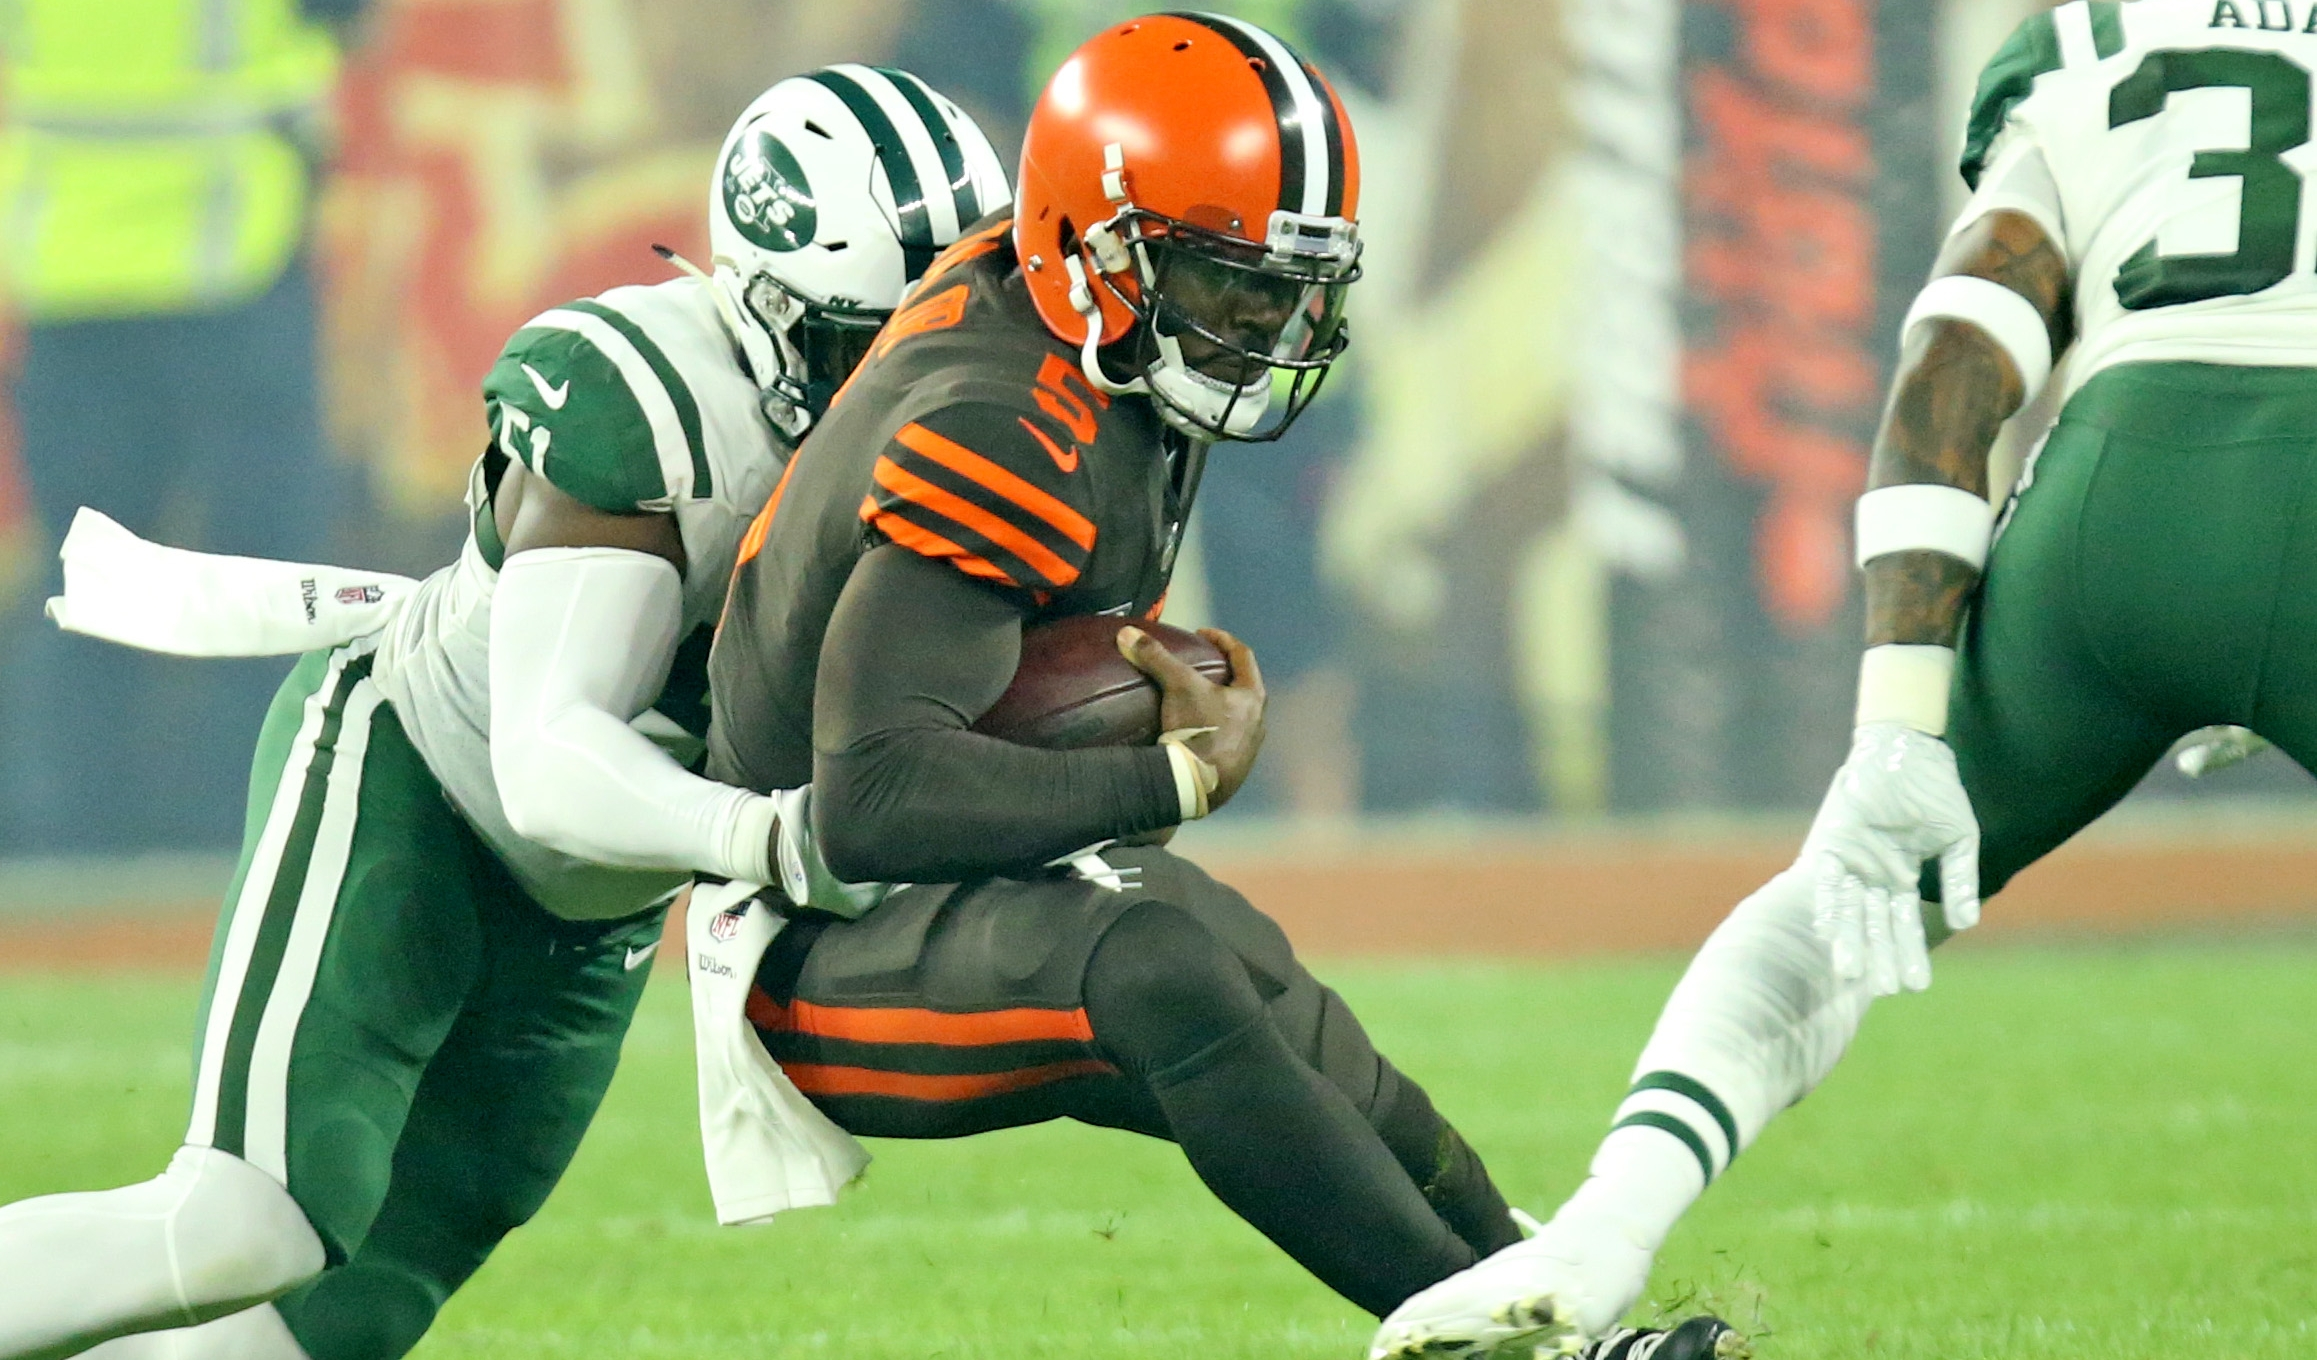 New York Jets LB suspended, Miami Dolphins extend WR (AFC East Roundup)